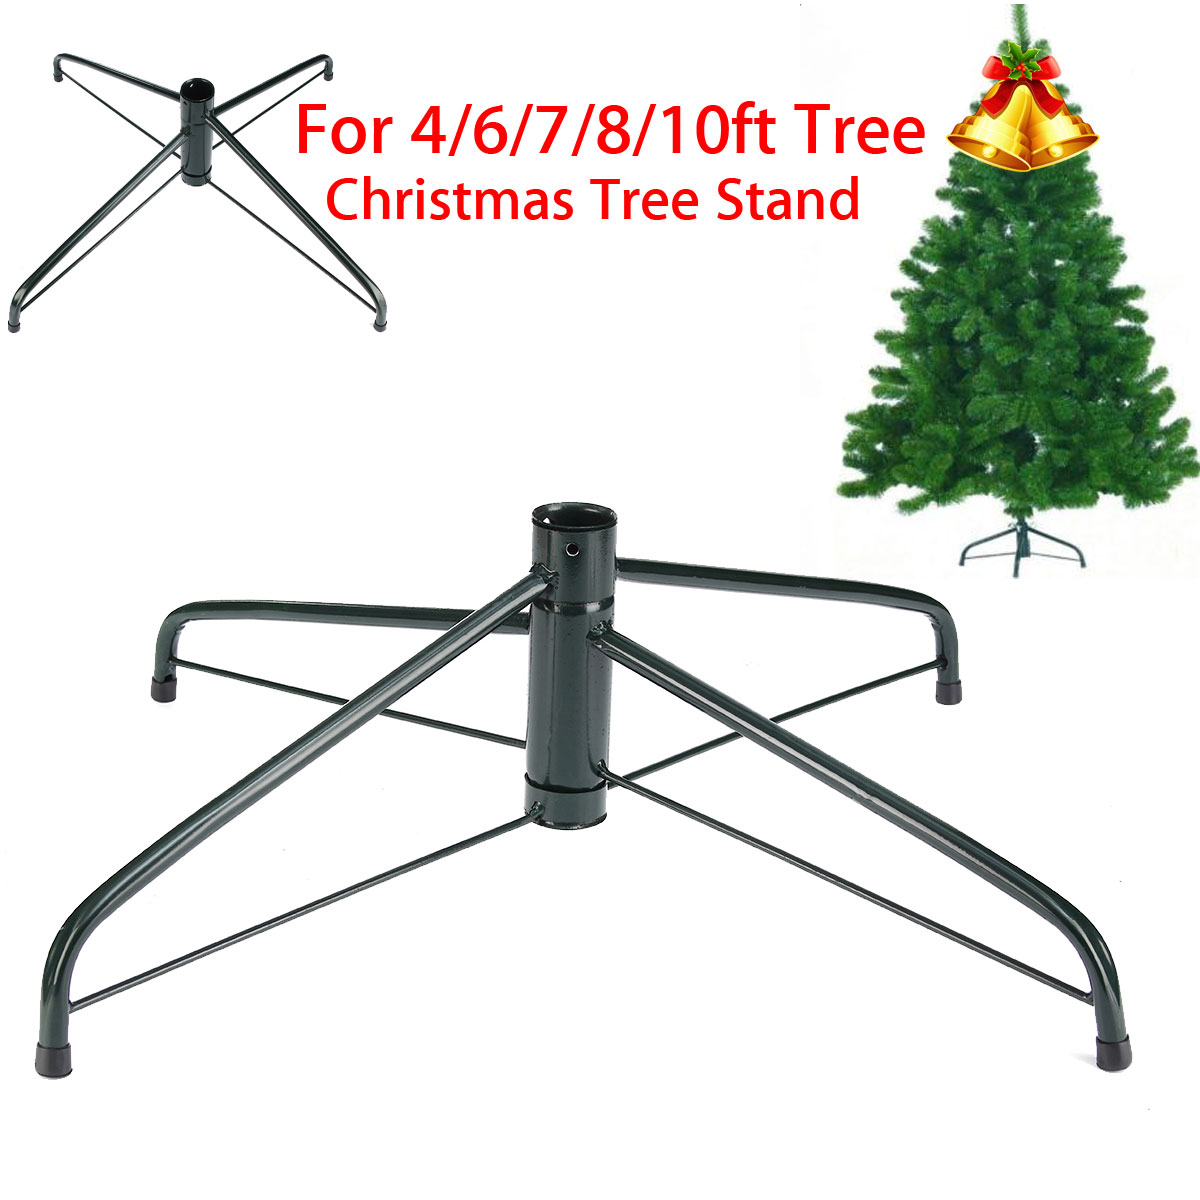 Folding Christmas Tree Stand Christmastreemount Metal Holder Cast Iron Stand For Artificial Trees 7ft 8ft Tall Walmart Canada